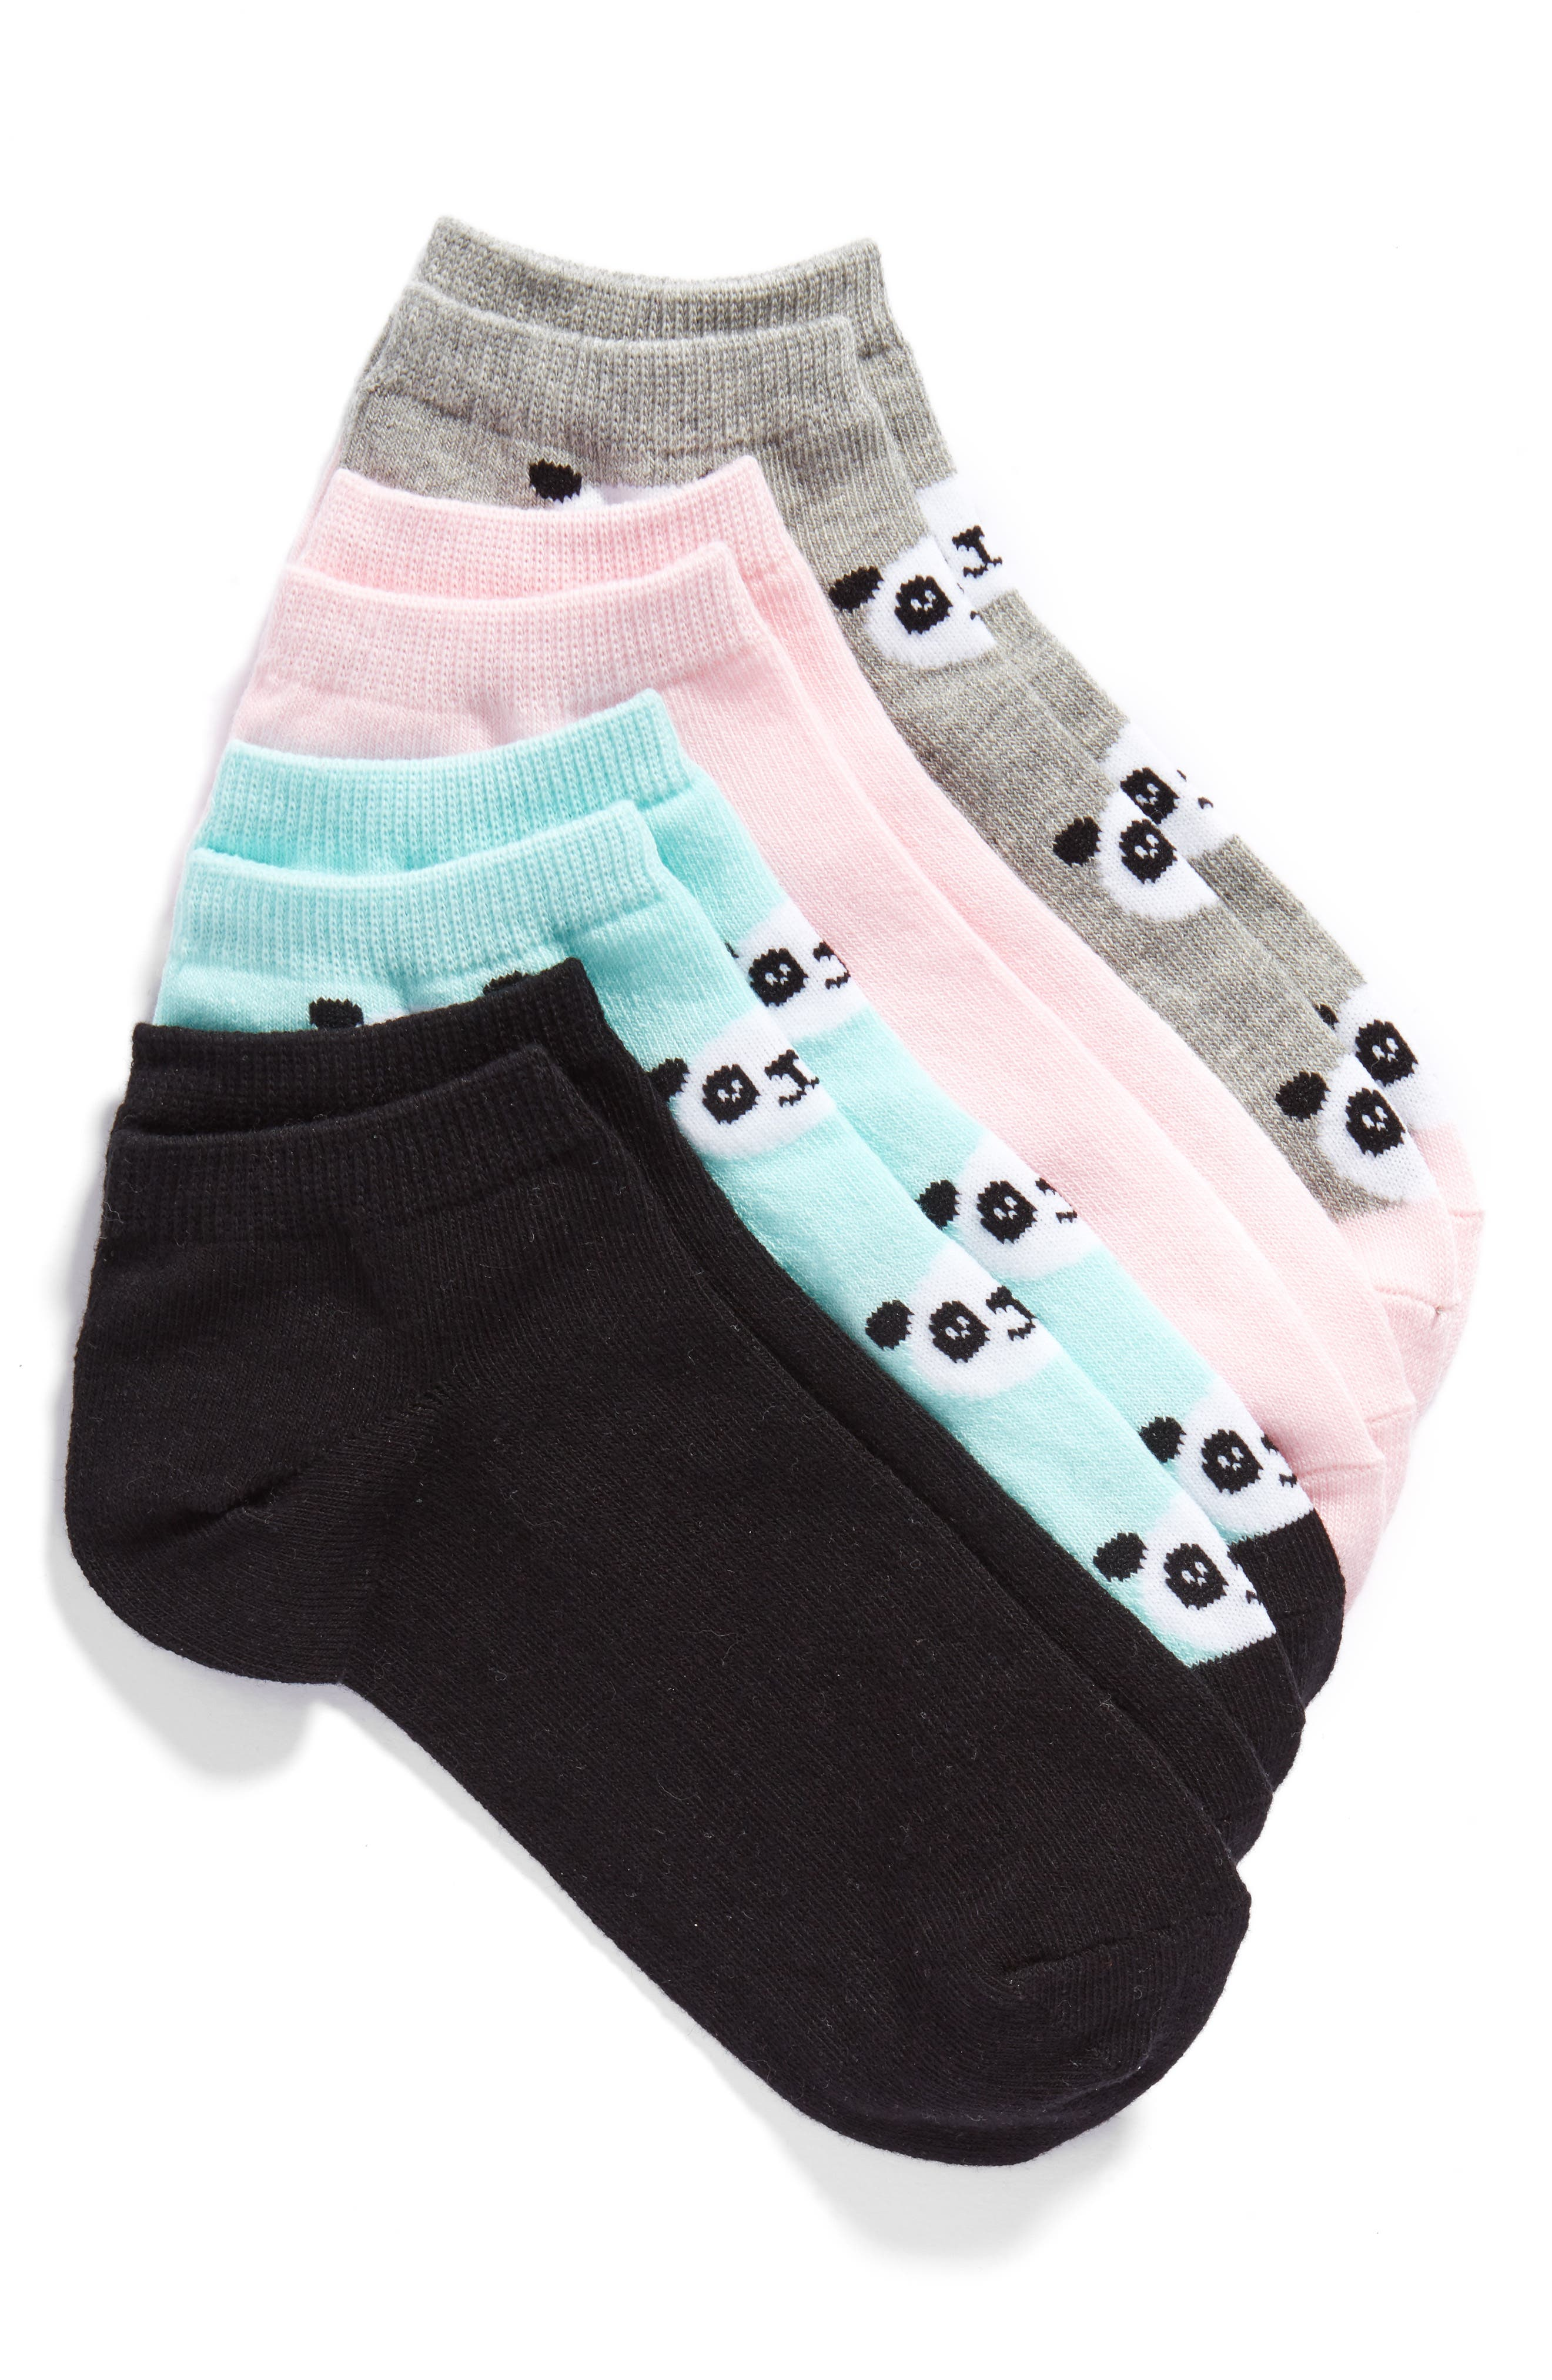 Panda Face 4-Pack Ankle Socks,                         Main,                         color, 060